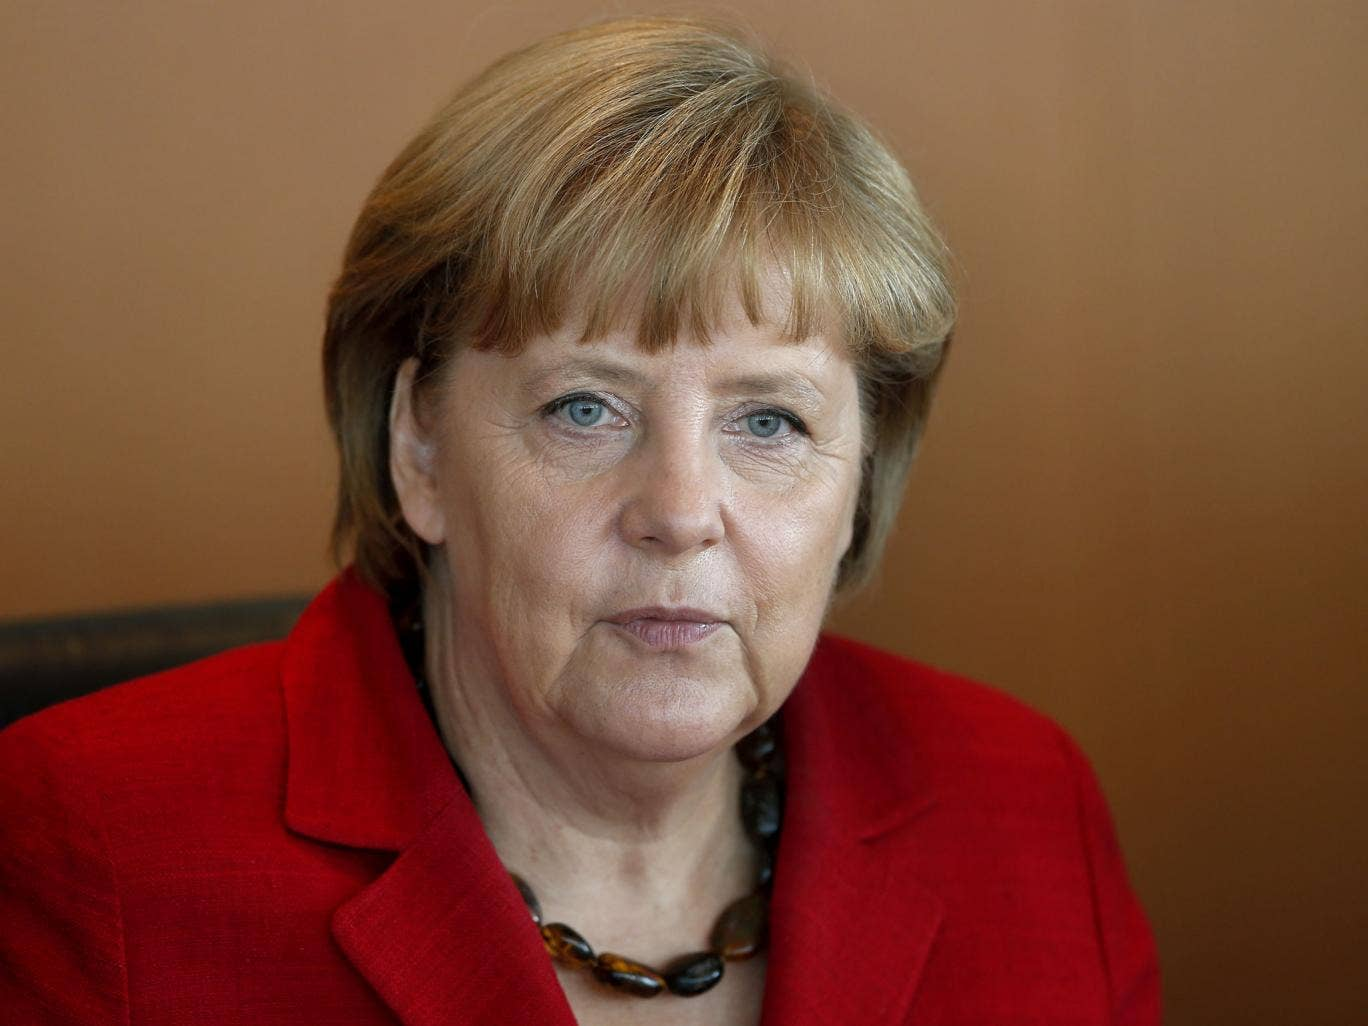 Angela Merkel has said Greece should have never been allowed to join the euro